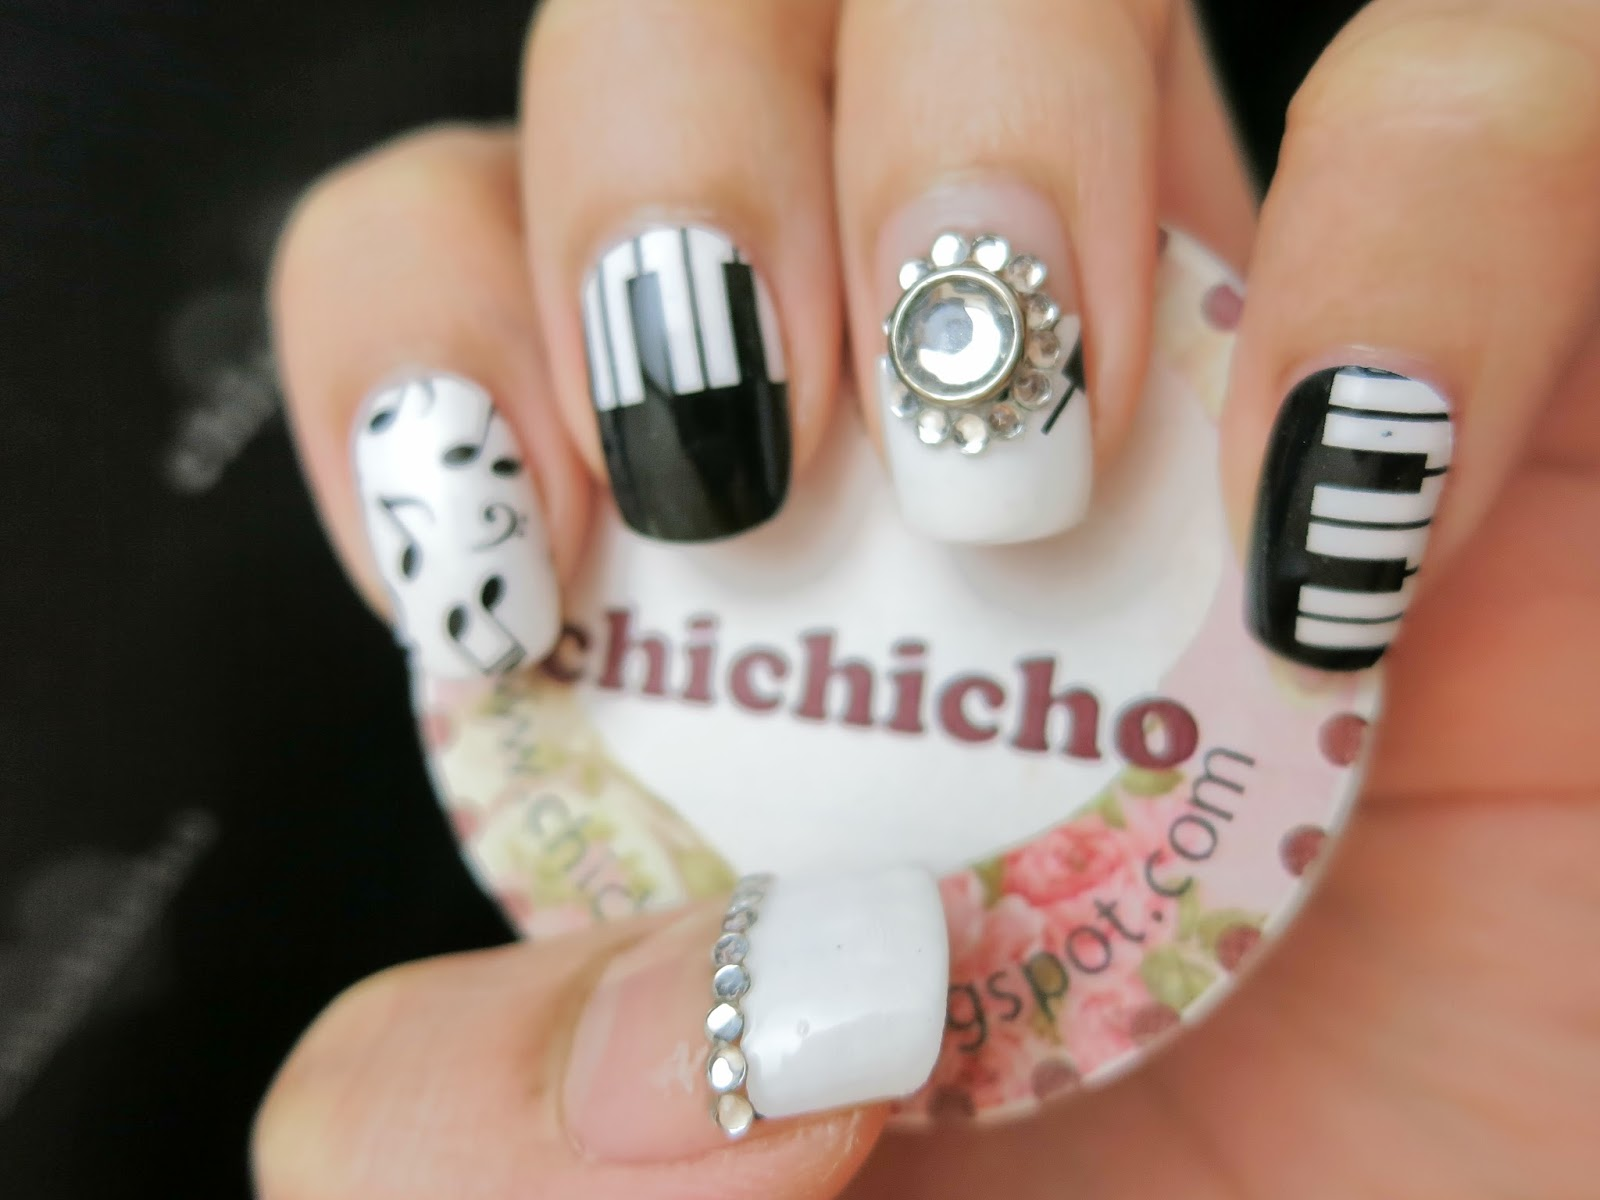 Piano and music nail art nail wrap s1257 chichicho piano something i havent play in ages thinking back i dont even know why i learned piano when i was little sure it was fun and enjoyable prinsesfo Images